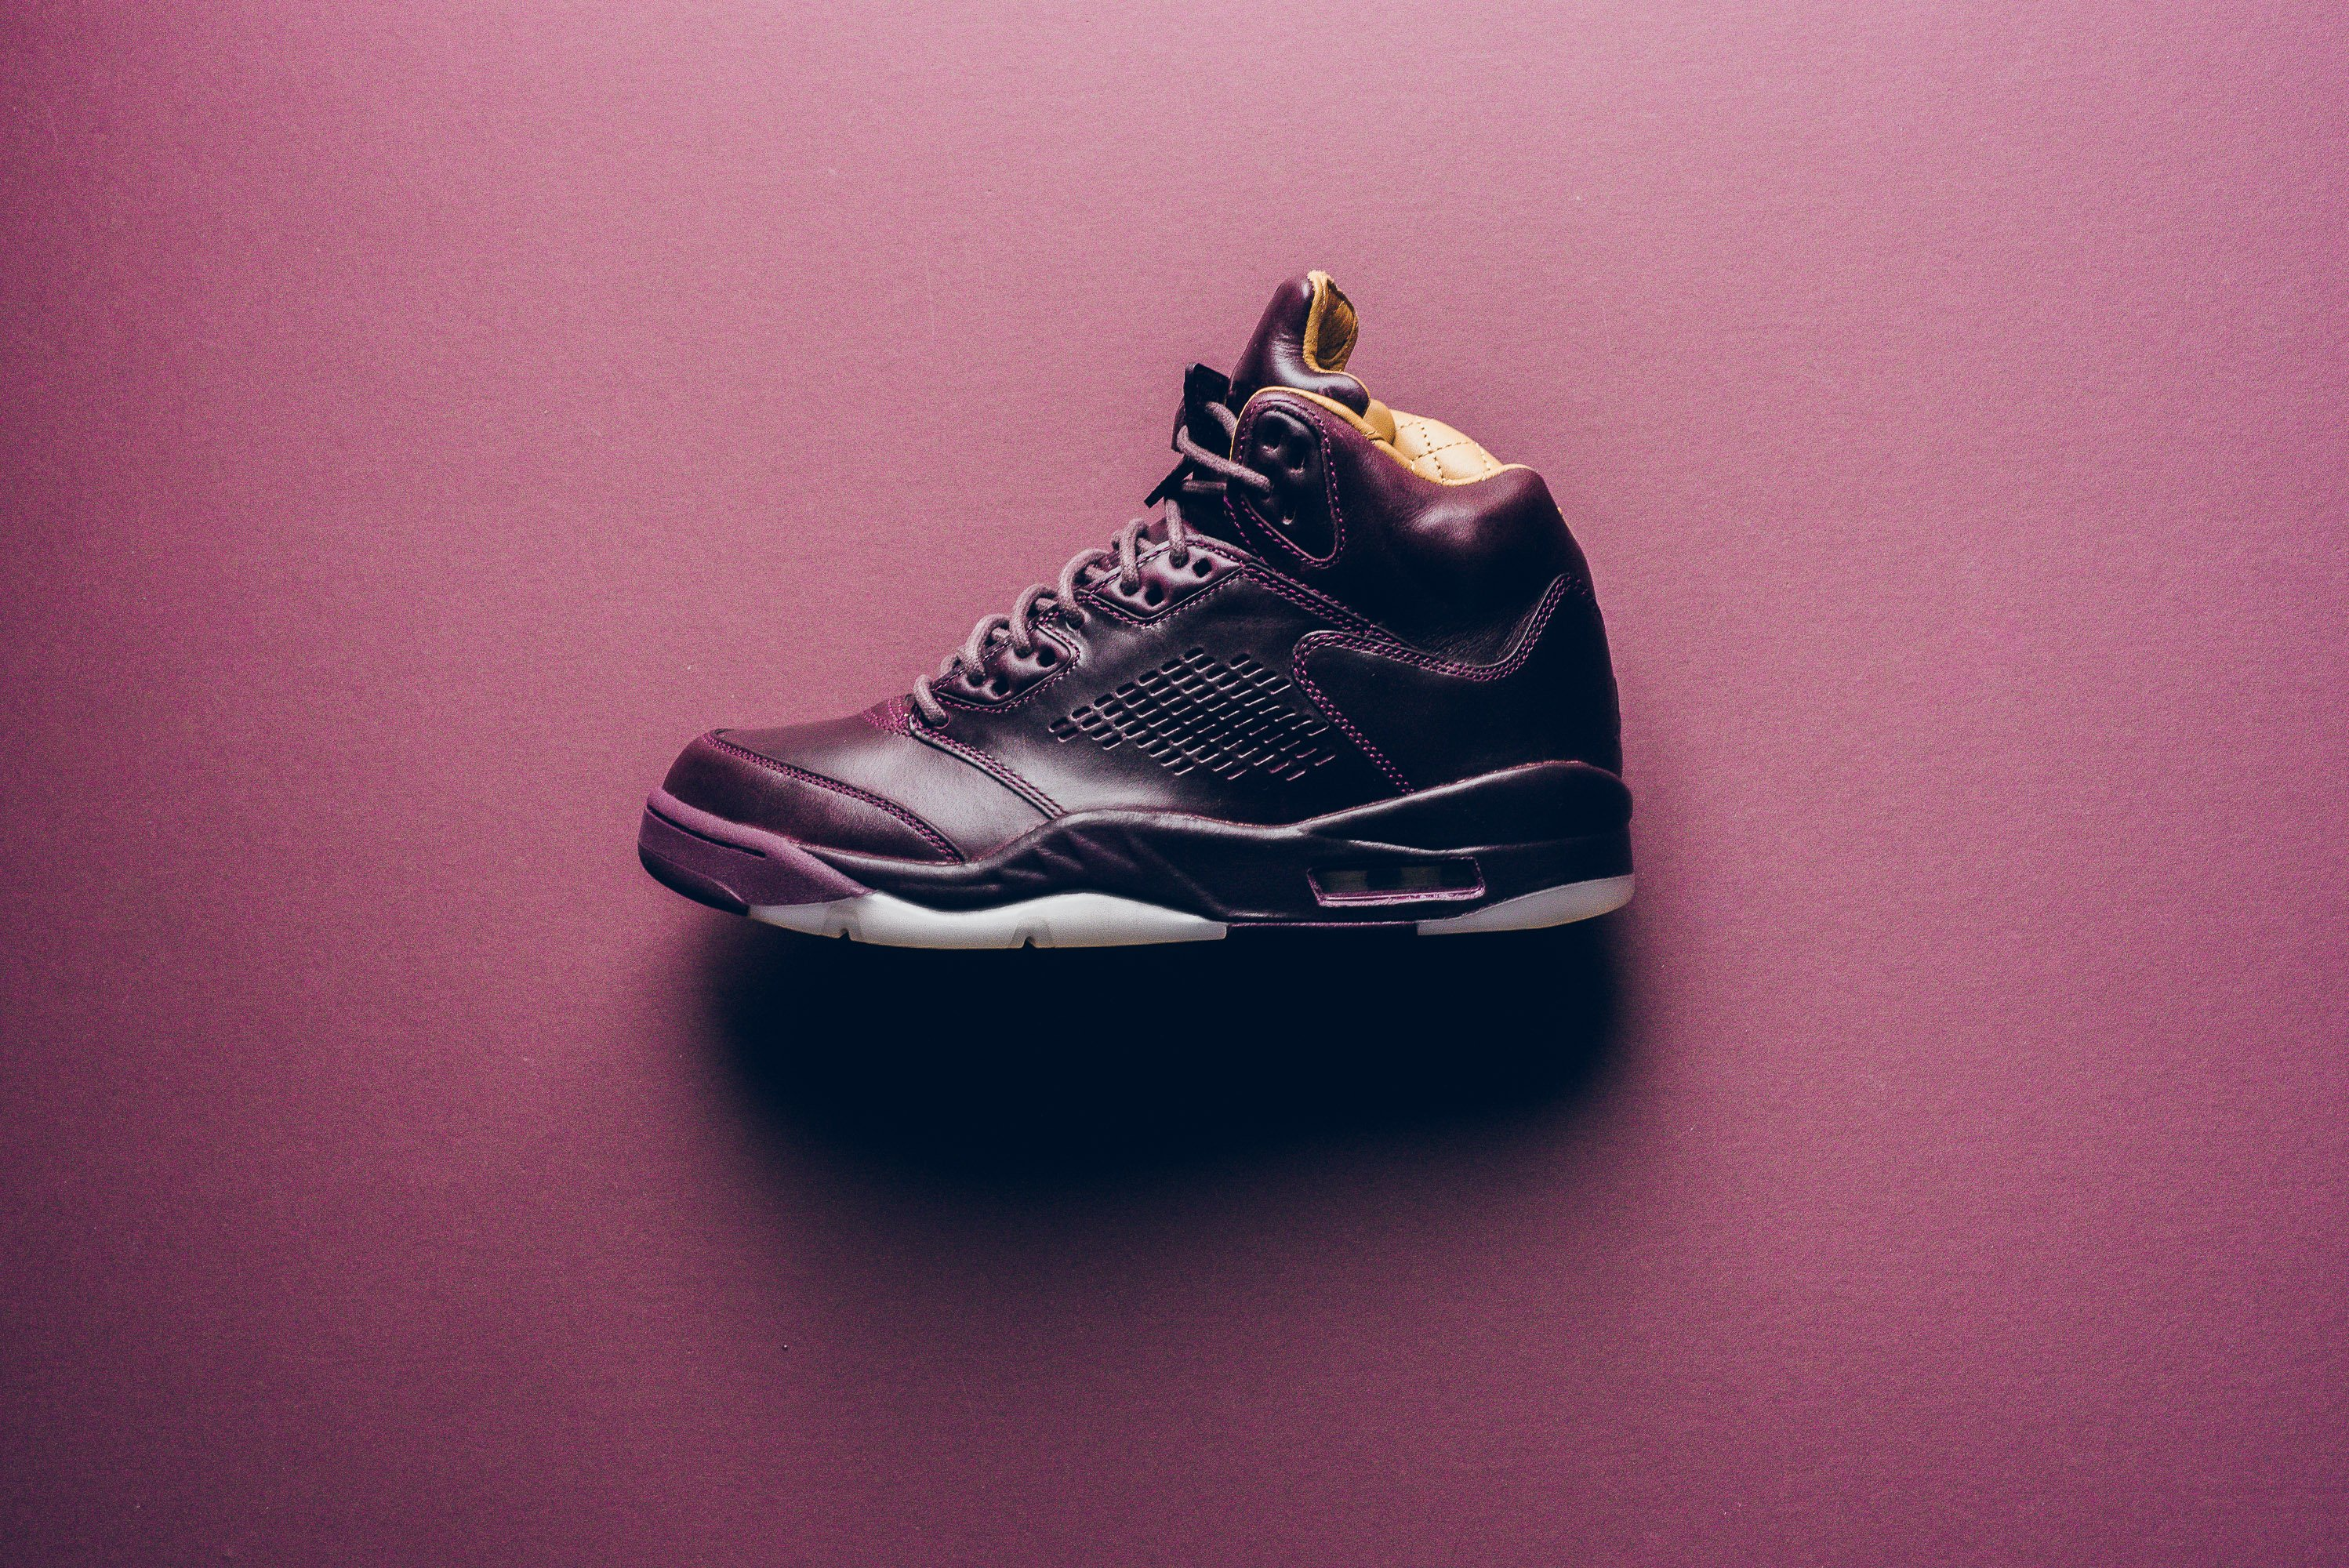 Air_JOrdan_5_retro_Premium_bordeaux_881432_612_sneaker_politics_1